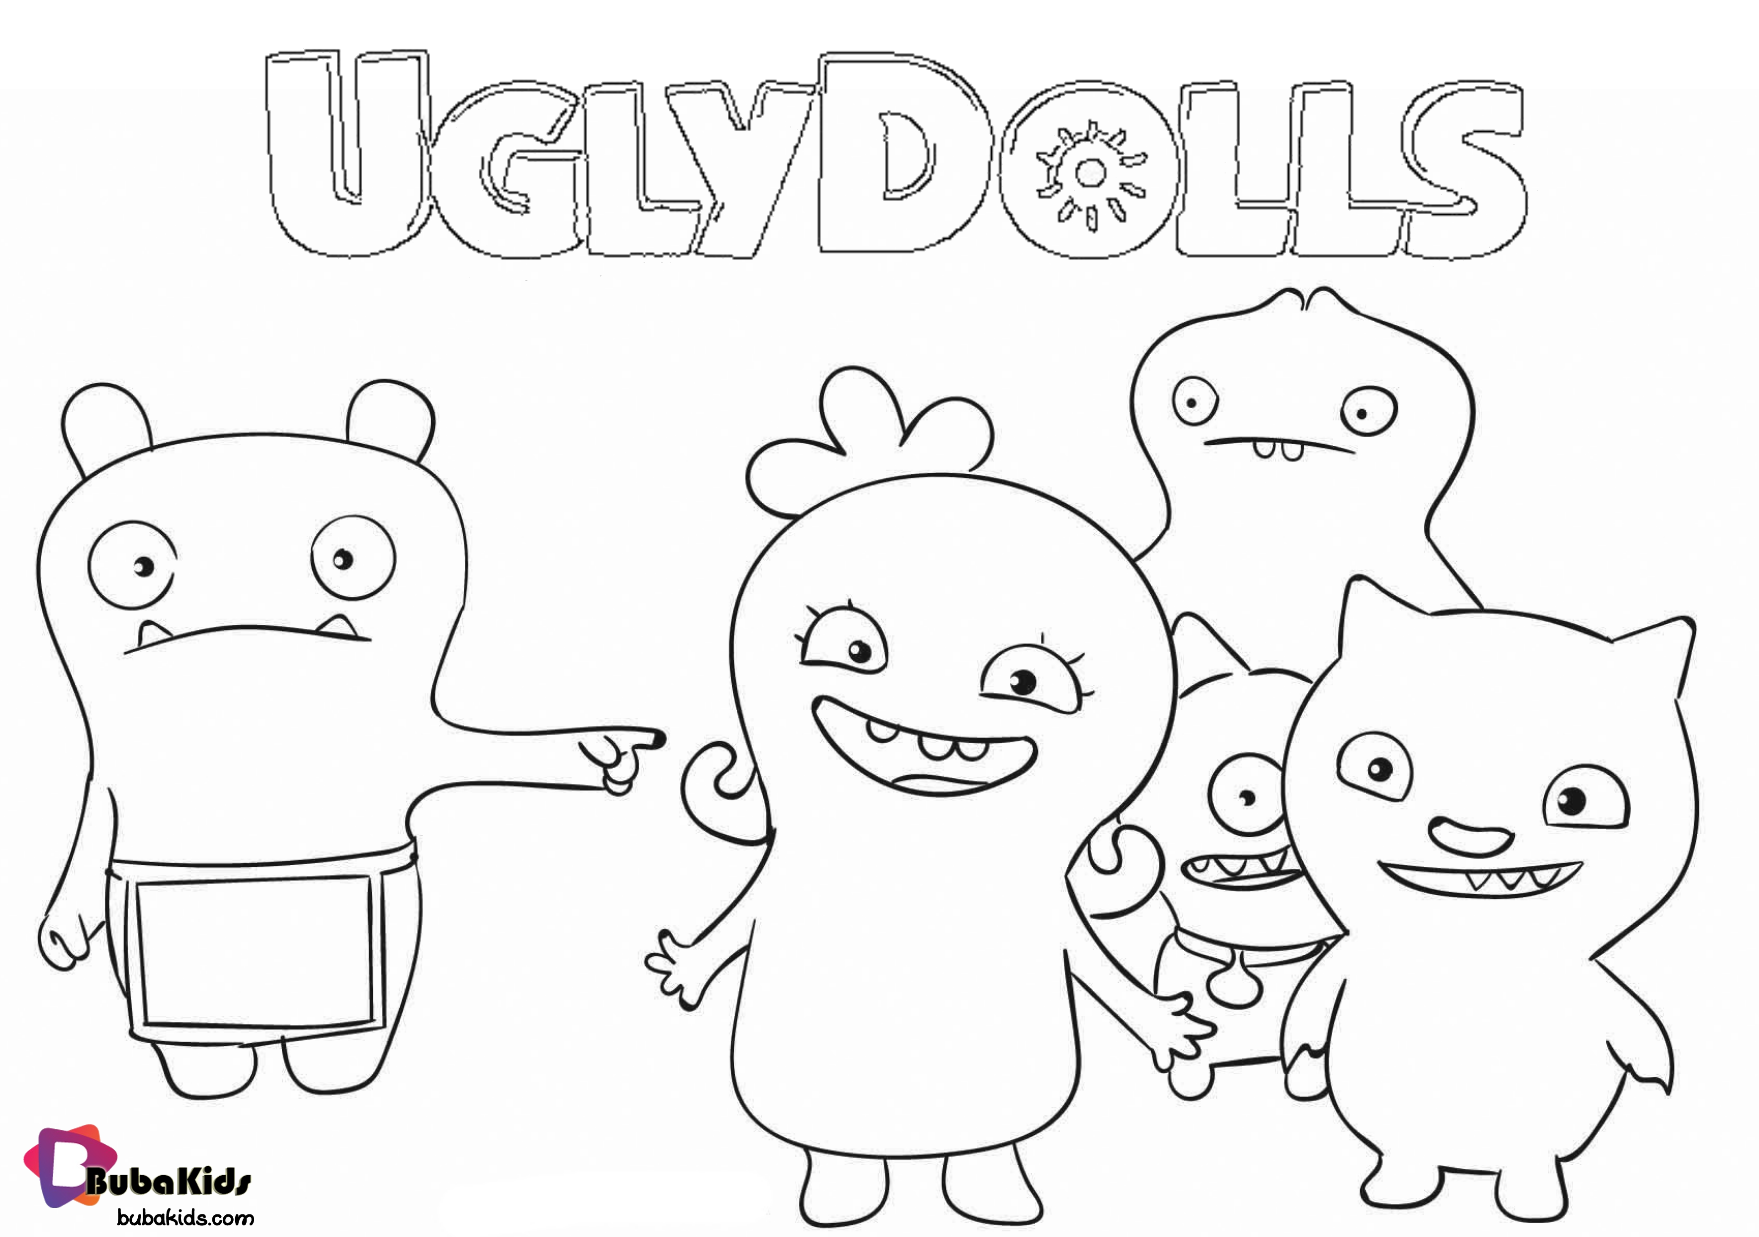 Free Printable Uglydolls Coloring Page With Images